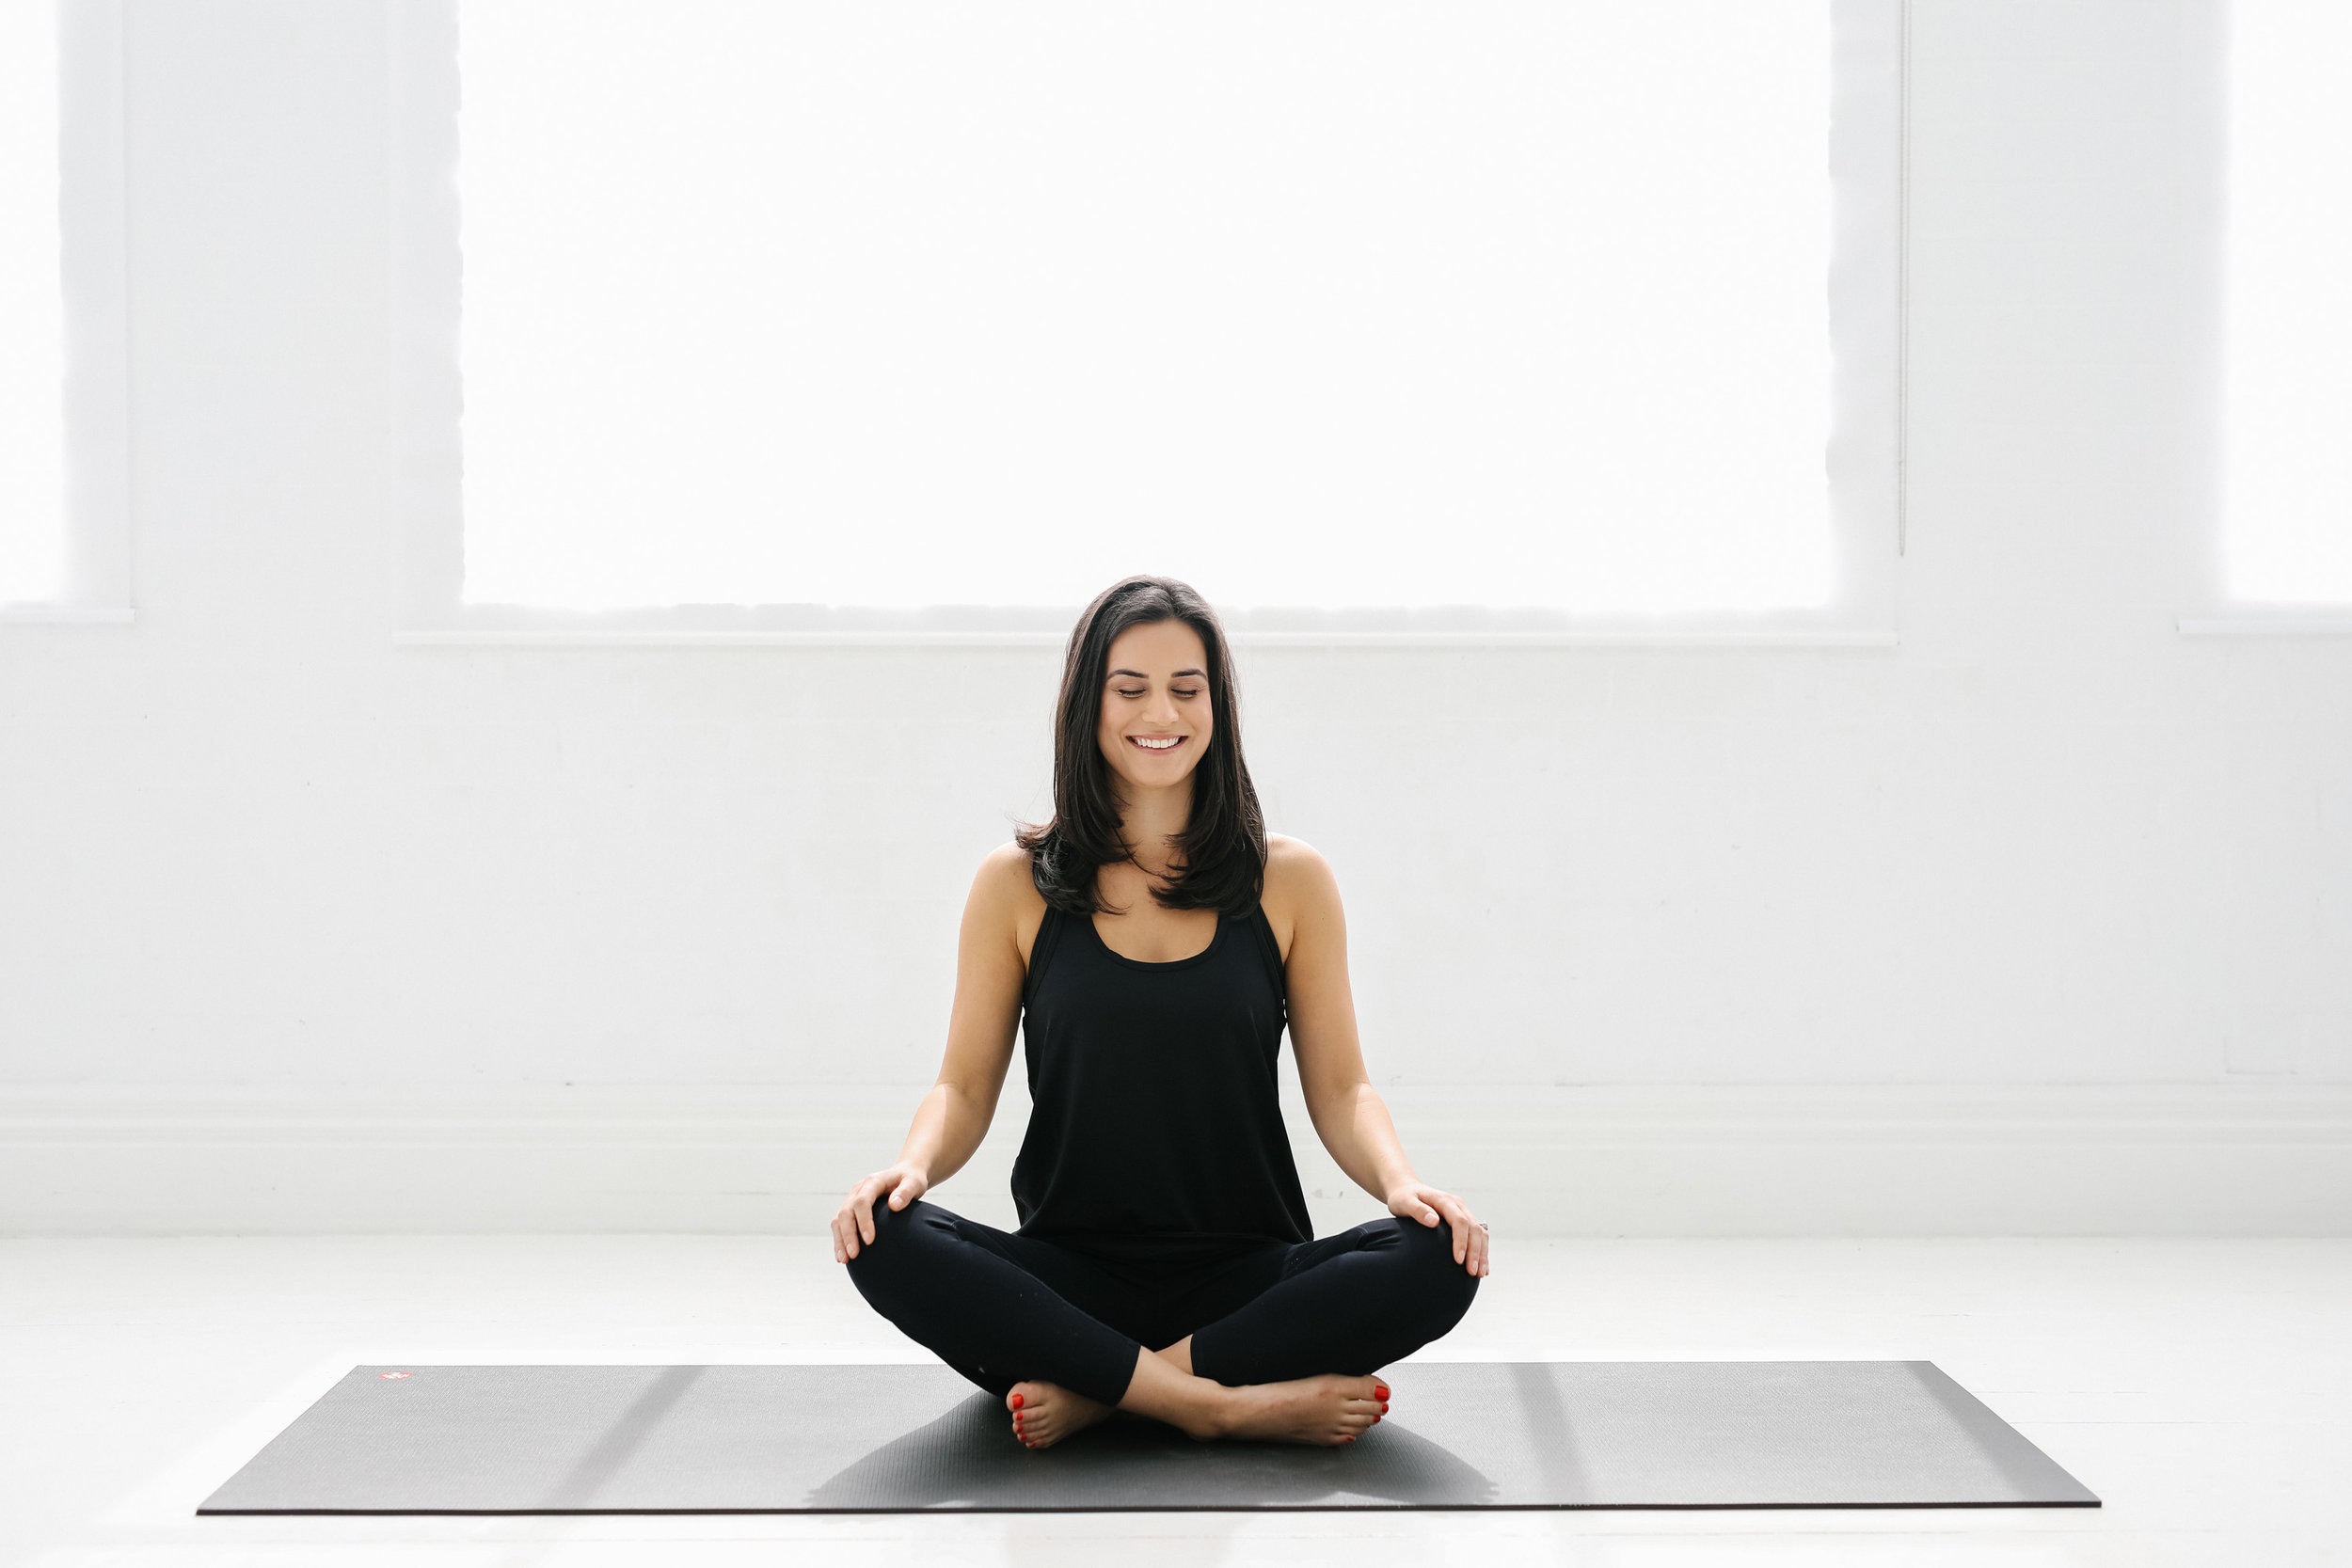 Meg James . Meditation Teacher - Learn some tips from Meg about becoming more mindful and join her for a 30 minute seated meditation class.